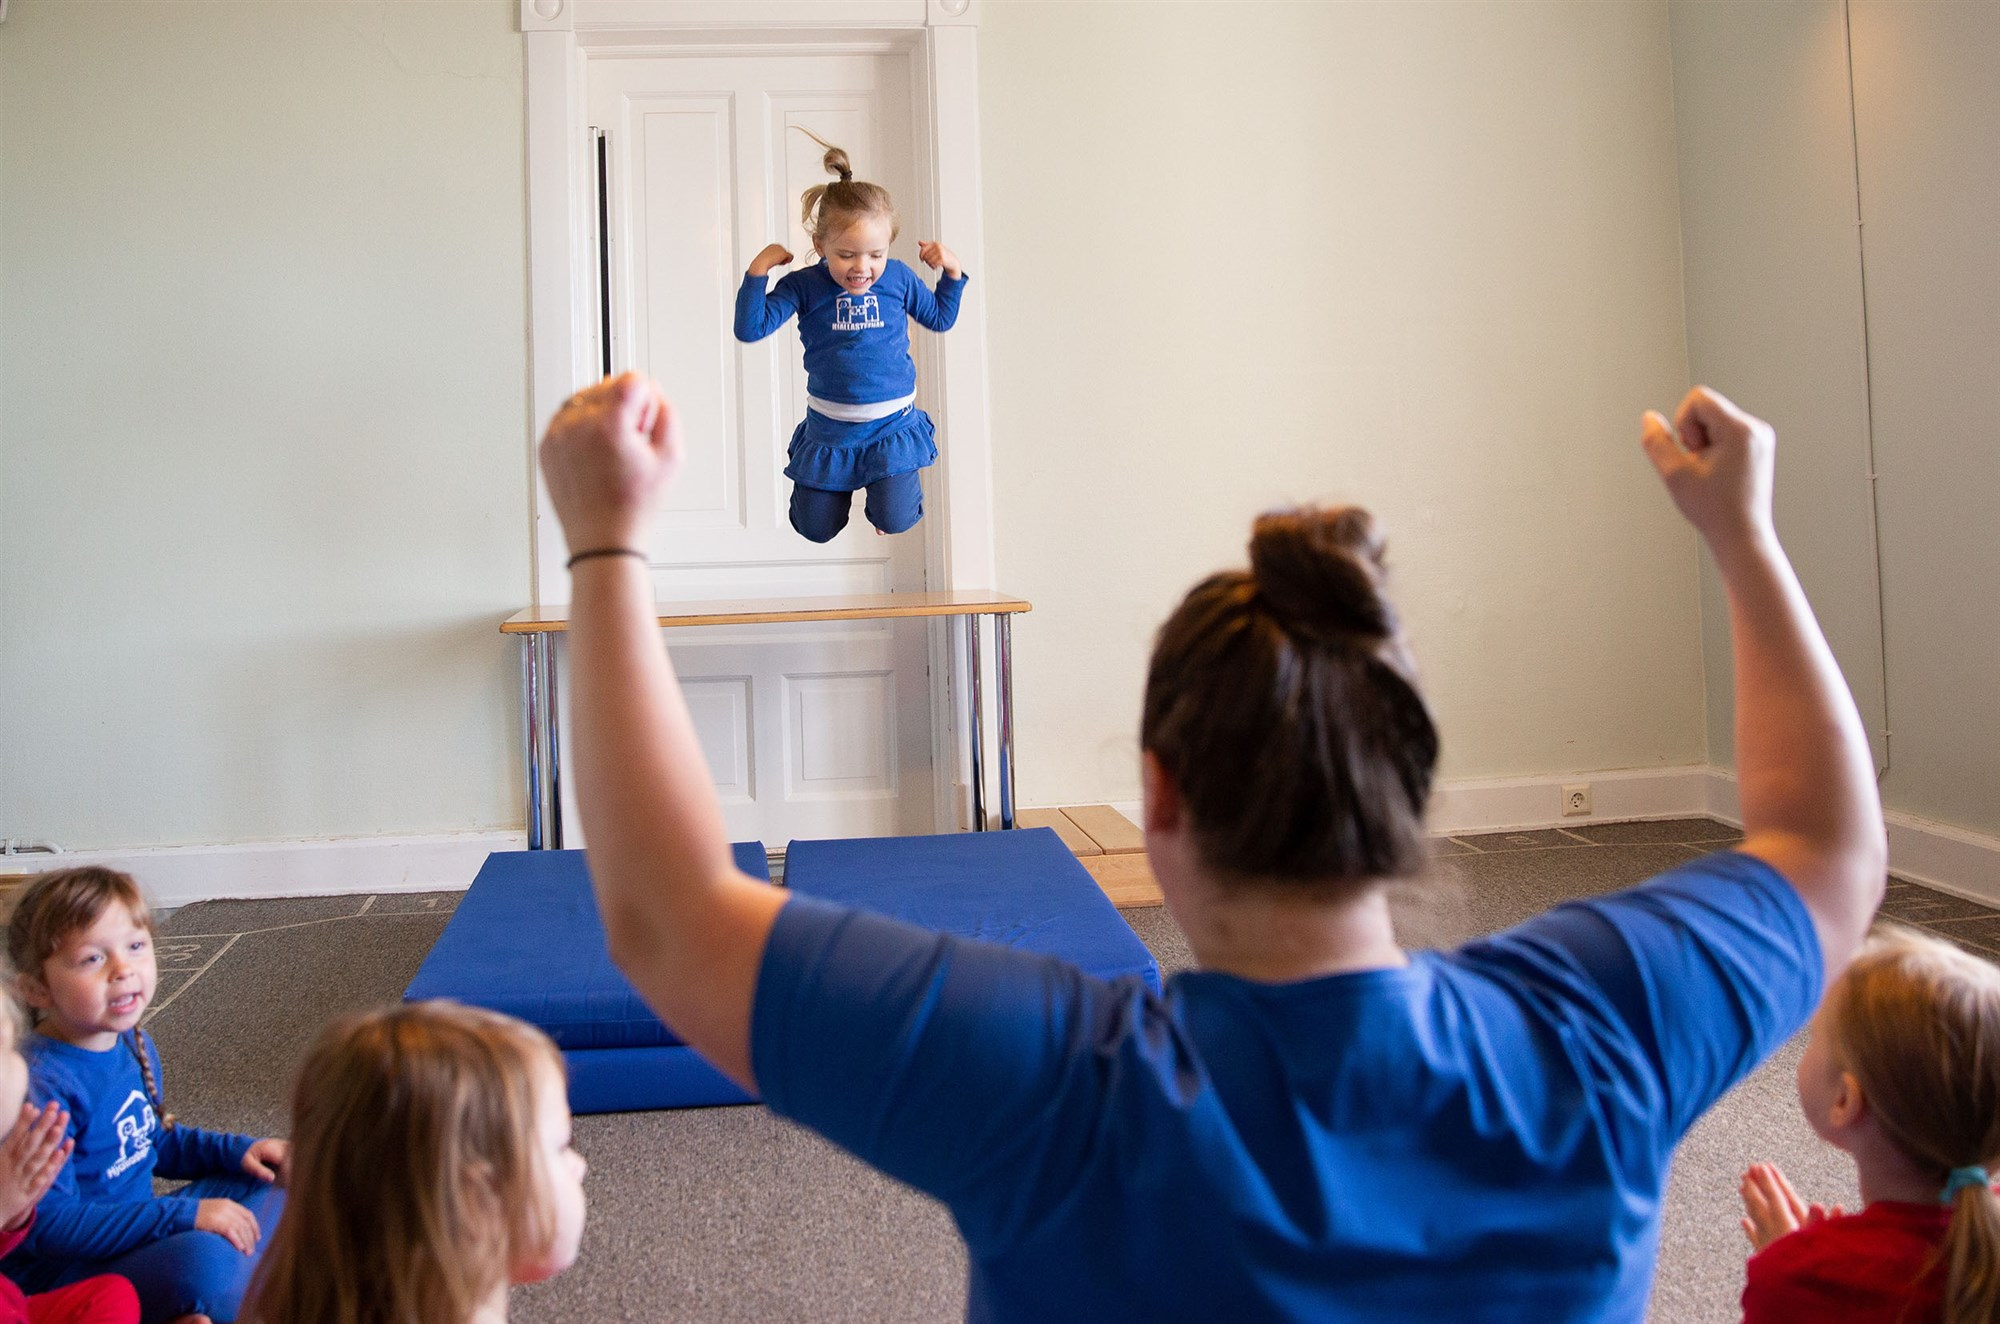 """A girl jumps off a table while shouting """"I am strong"""" at the Laufásborg kindergarten in Reykjavik, Iceland.Brynjar Gunnarsson / for NBC News"""